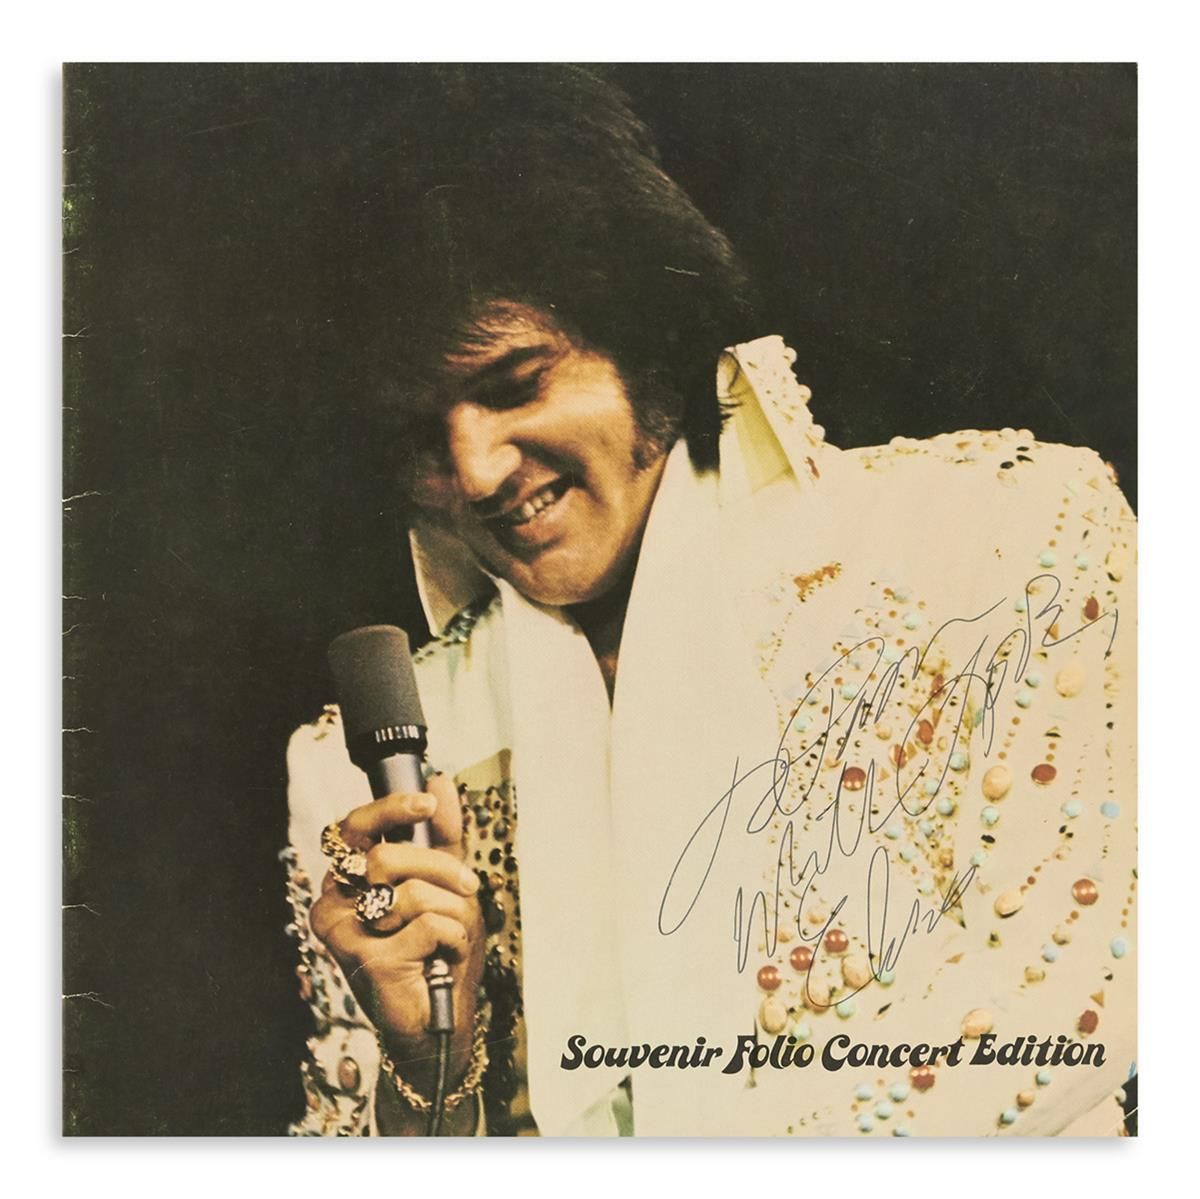 PRESLEY, ELVIS. Souvenir Folio Concert Edition, Signed and Inscribed on front cover: To Pam / with Love / Elvis.